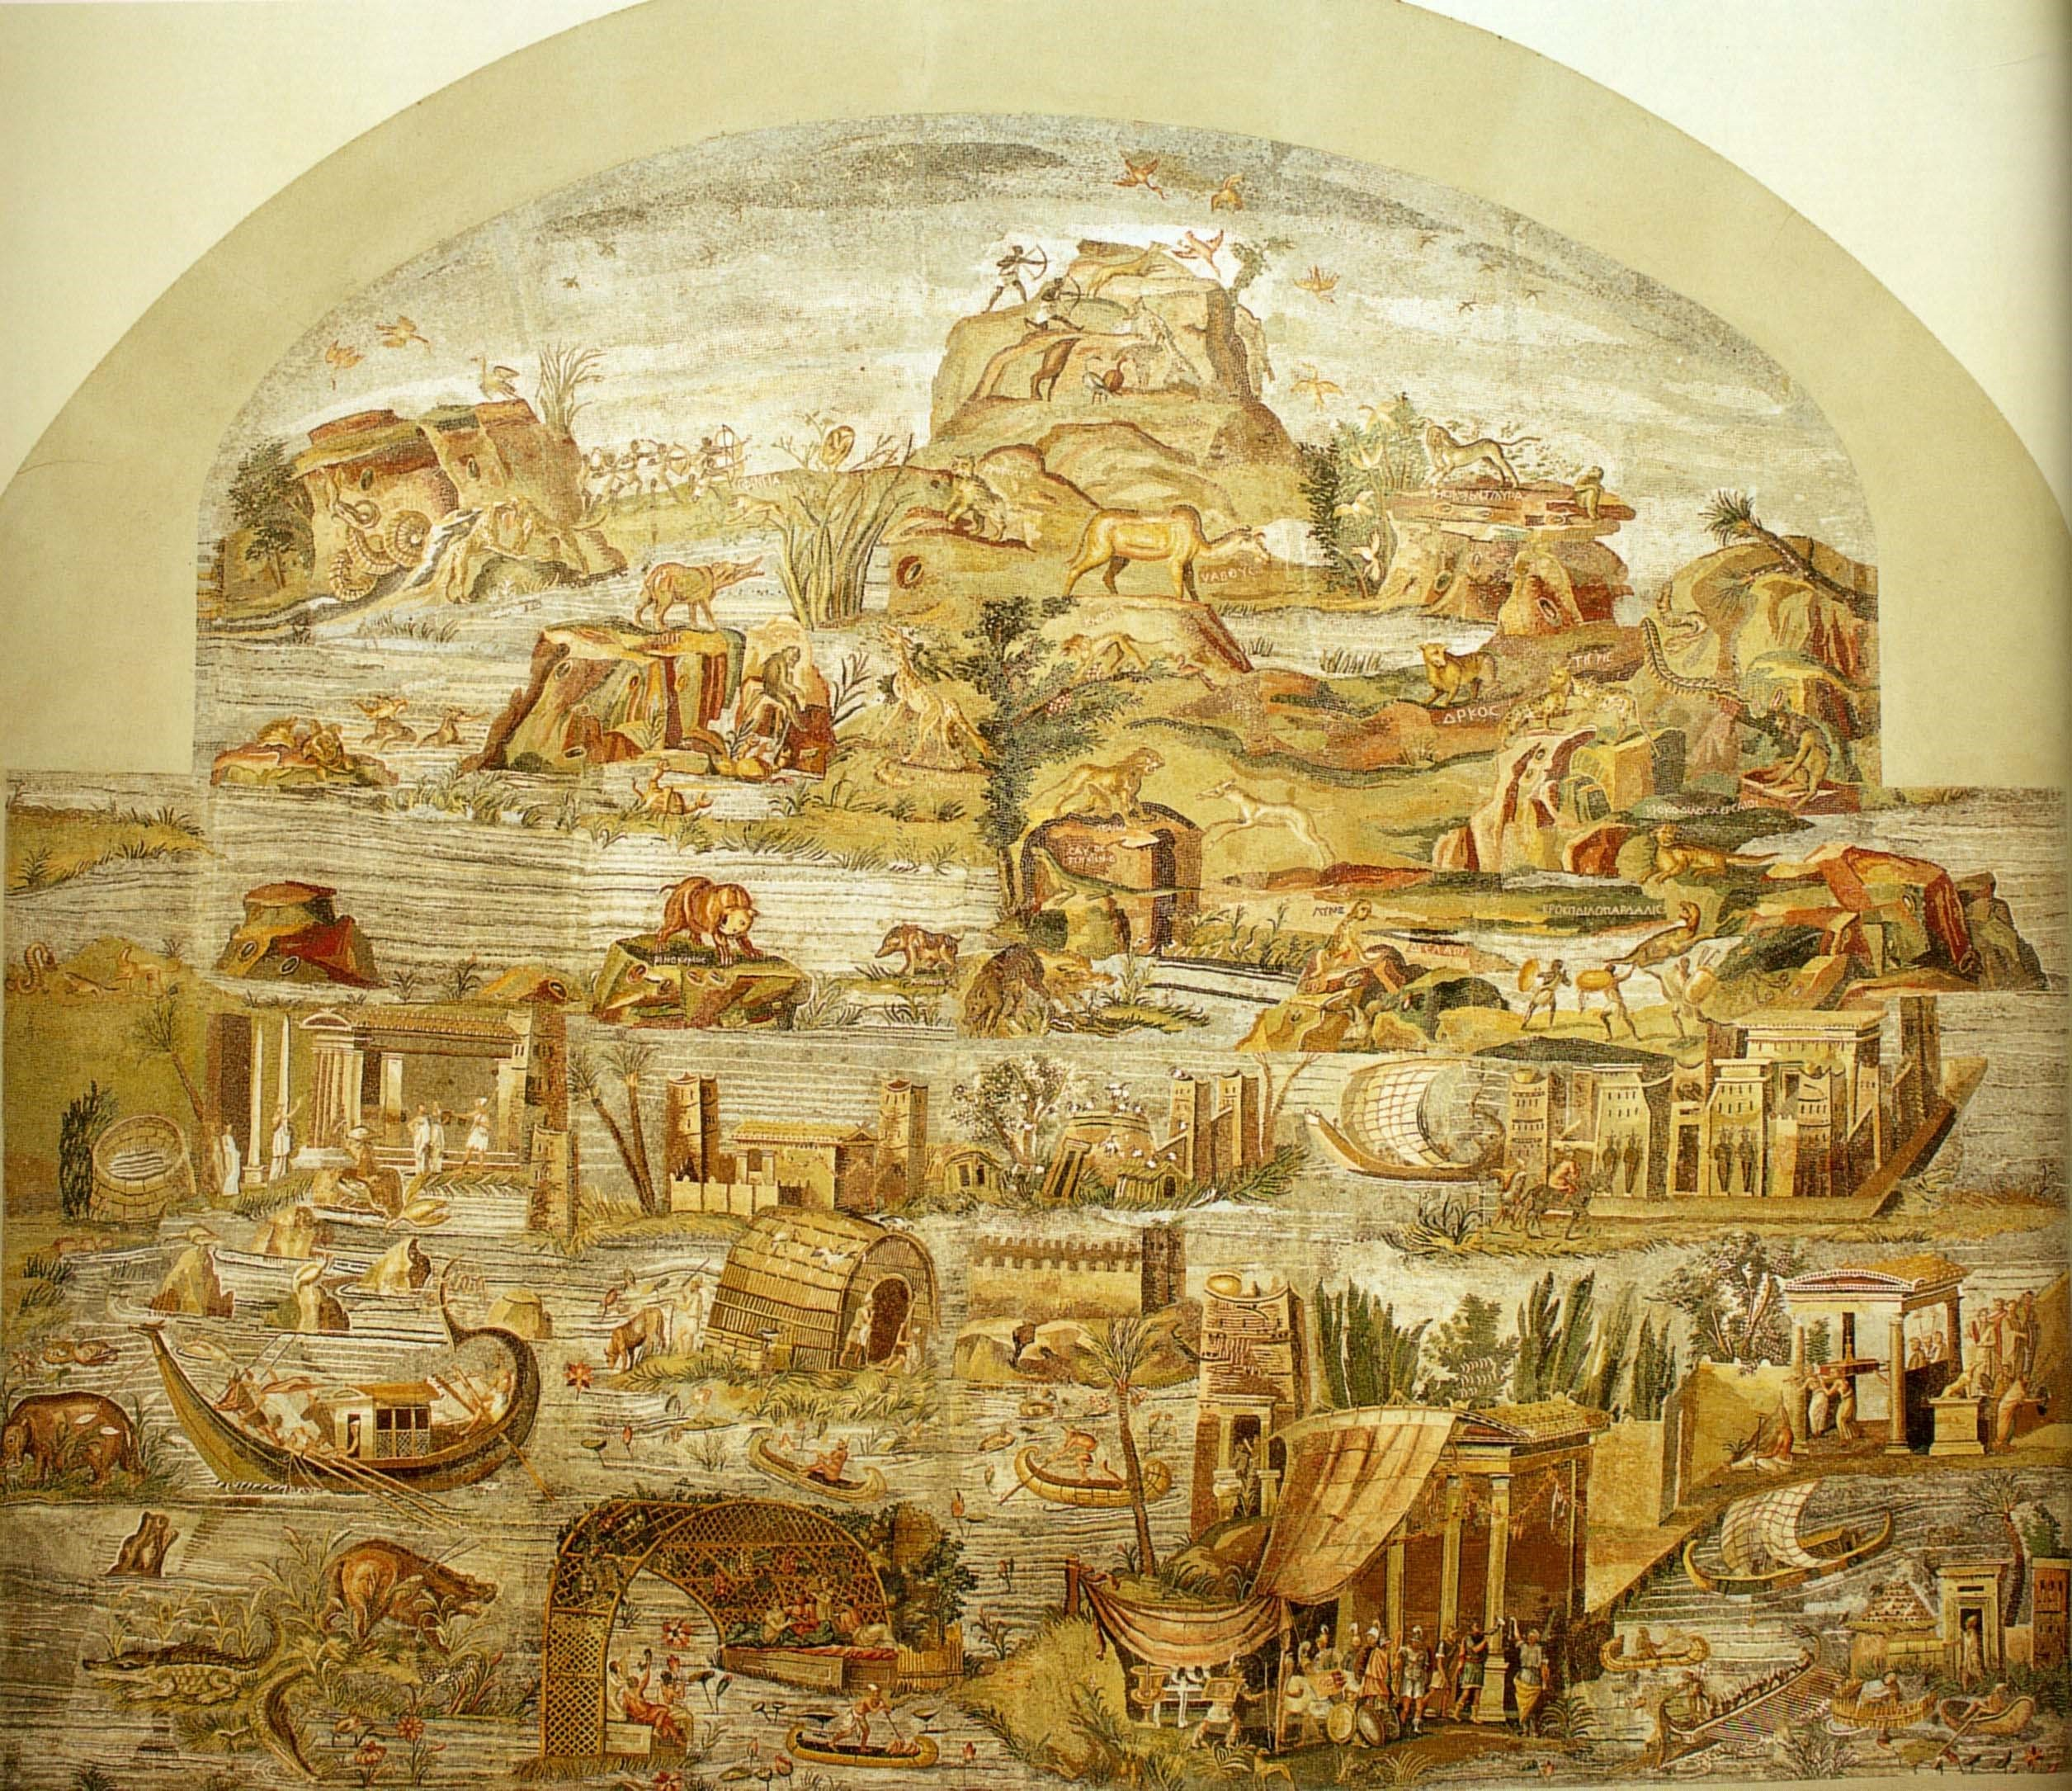 Nachleben and the Cultural Memory of Ancient Egypt